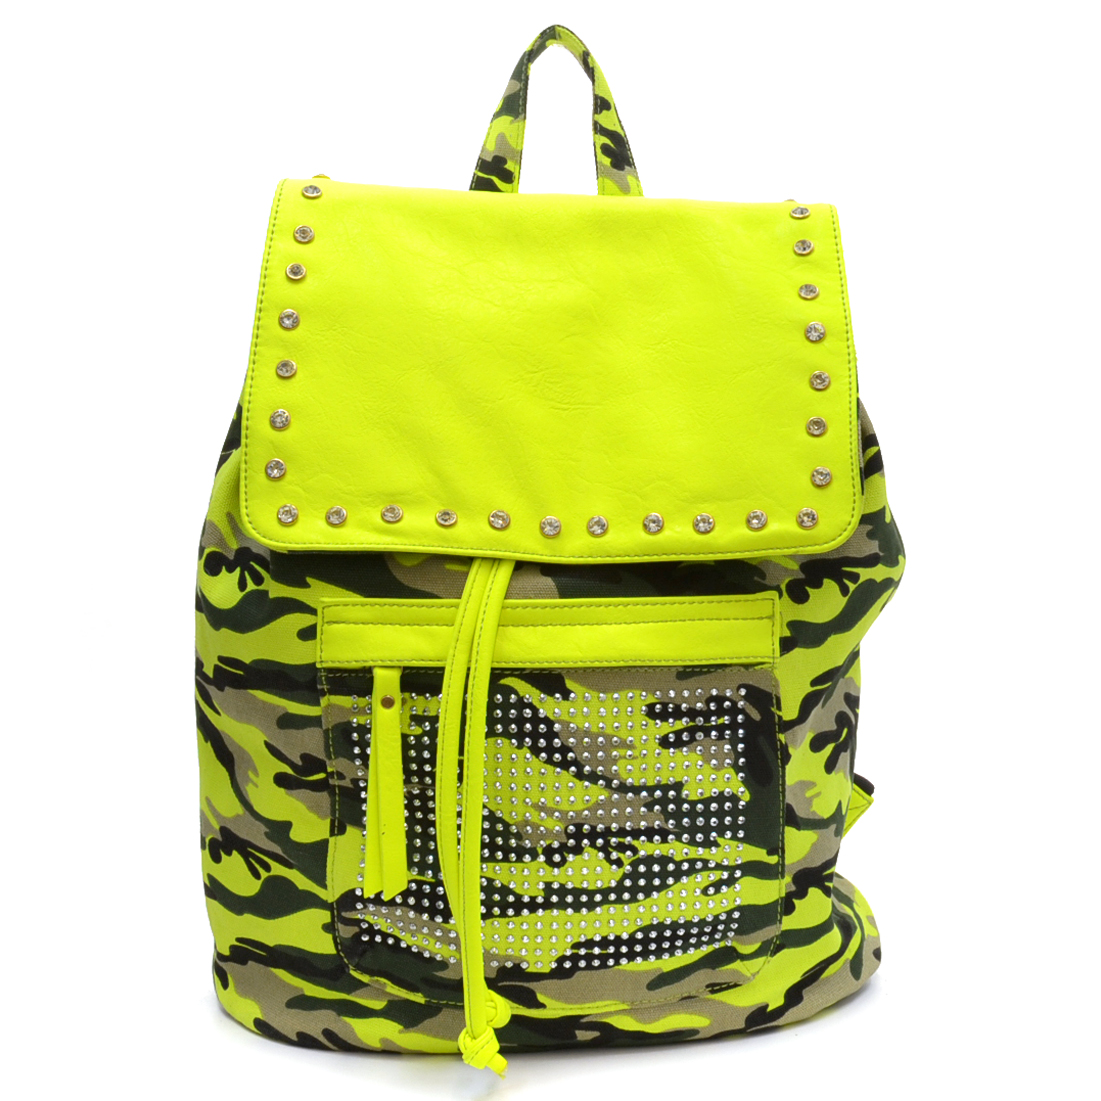 Camo Canvas Backpack with Studs Decoration with Neo color